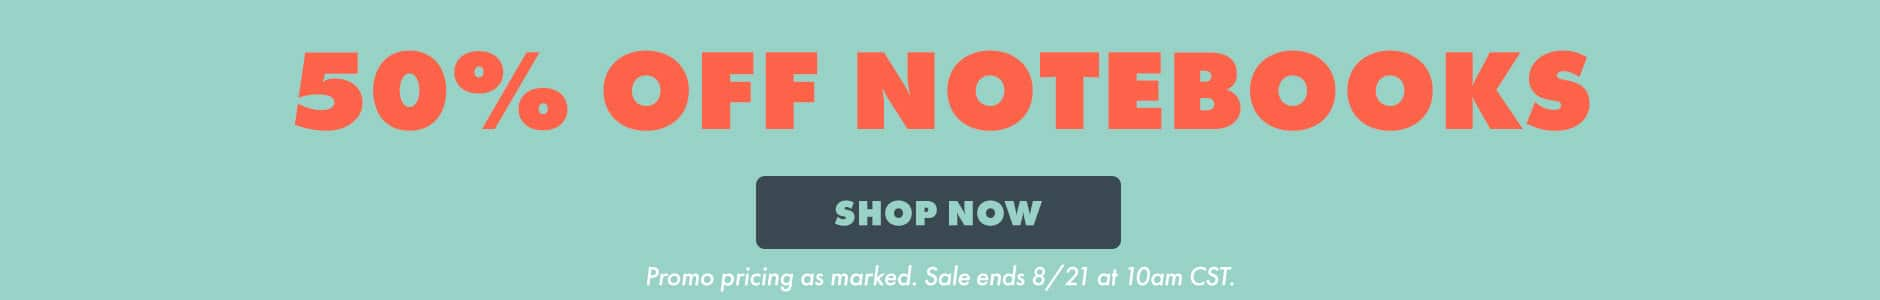 50% off notebooks. Shop now. Promo pricing as marked. Sale ends 8/21 at 10am CST.